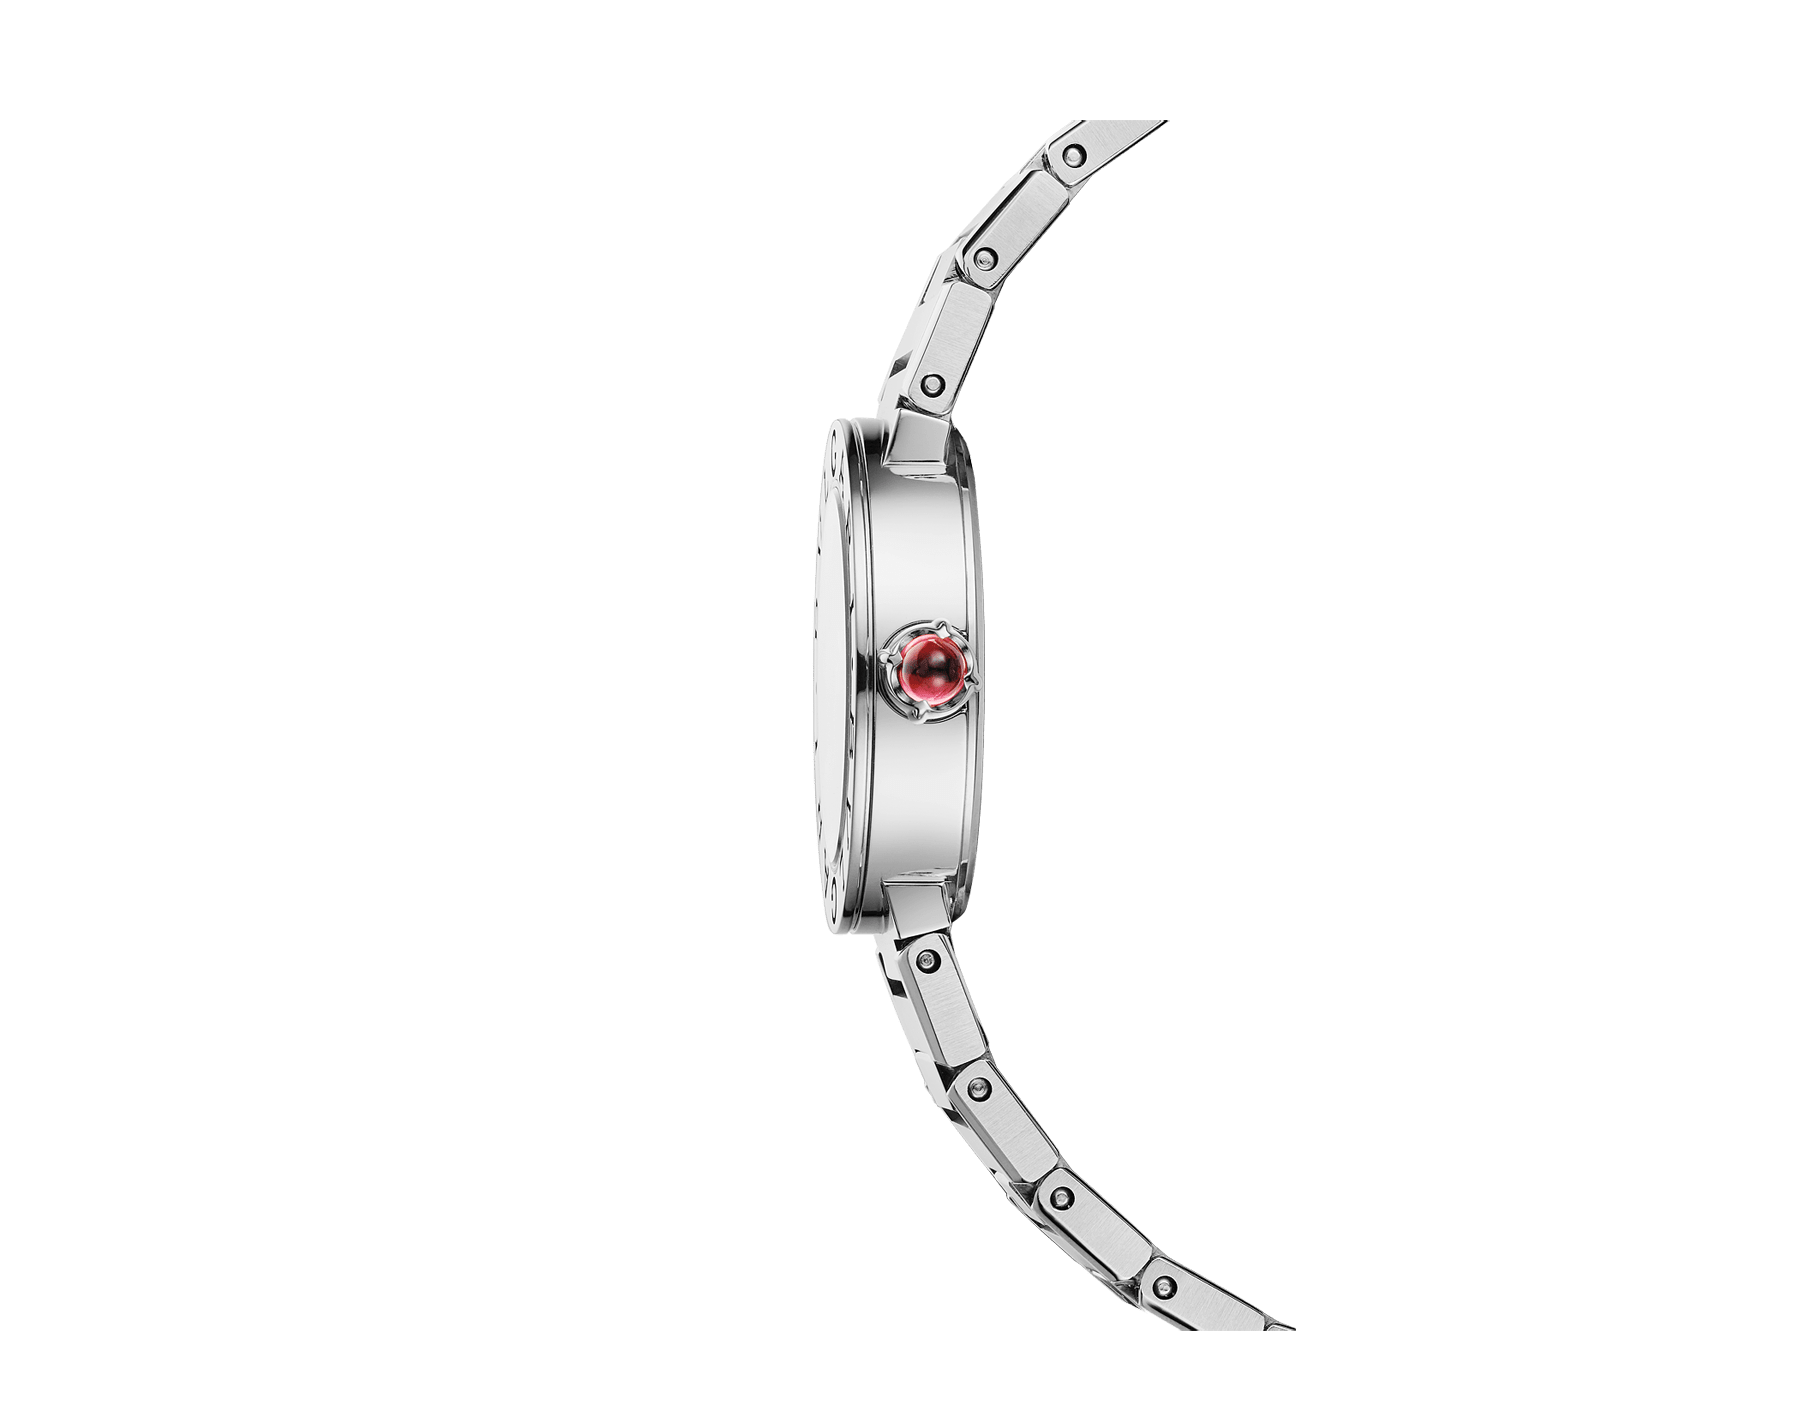 BVLGARI BVLGARI LADY watch in stainless steel case and bracelet, stainless steel bezel engraved with double logo, white mother-of-pearl dial and diamond indexes 103095 image 3